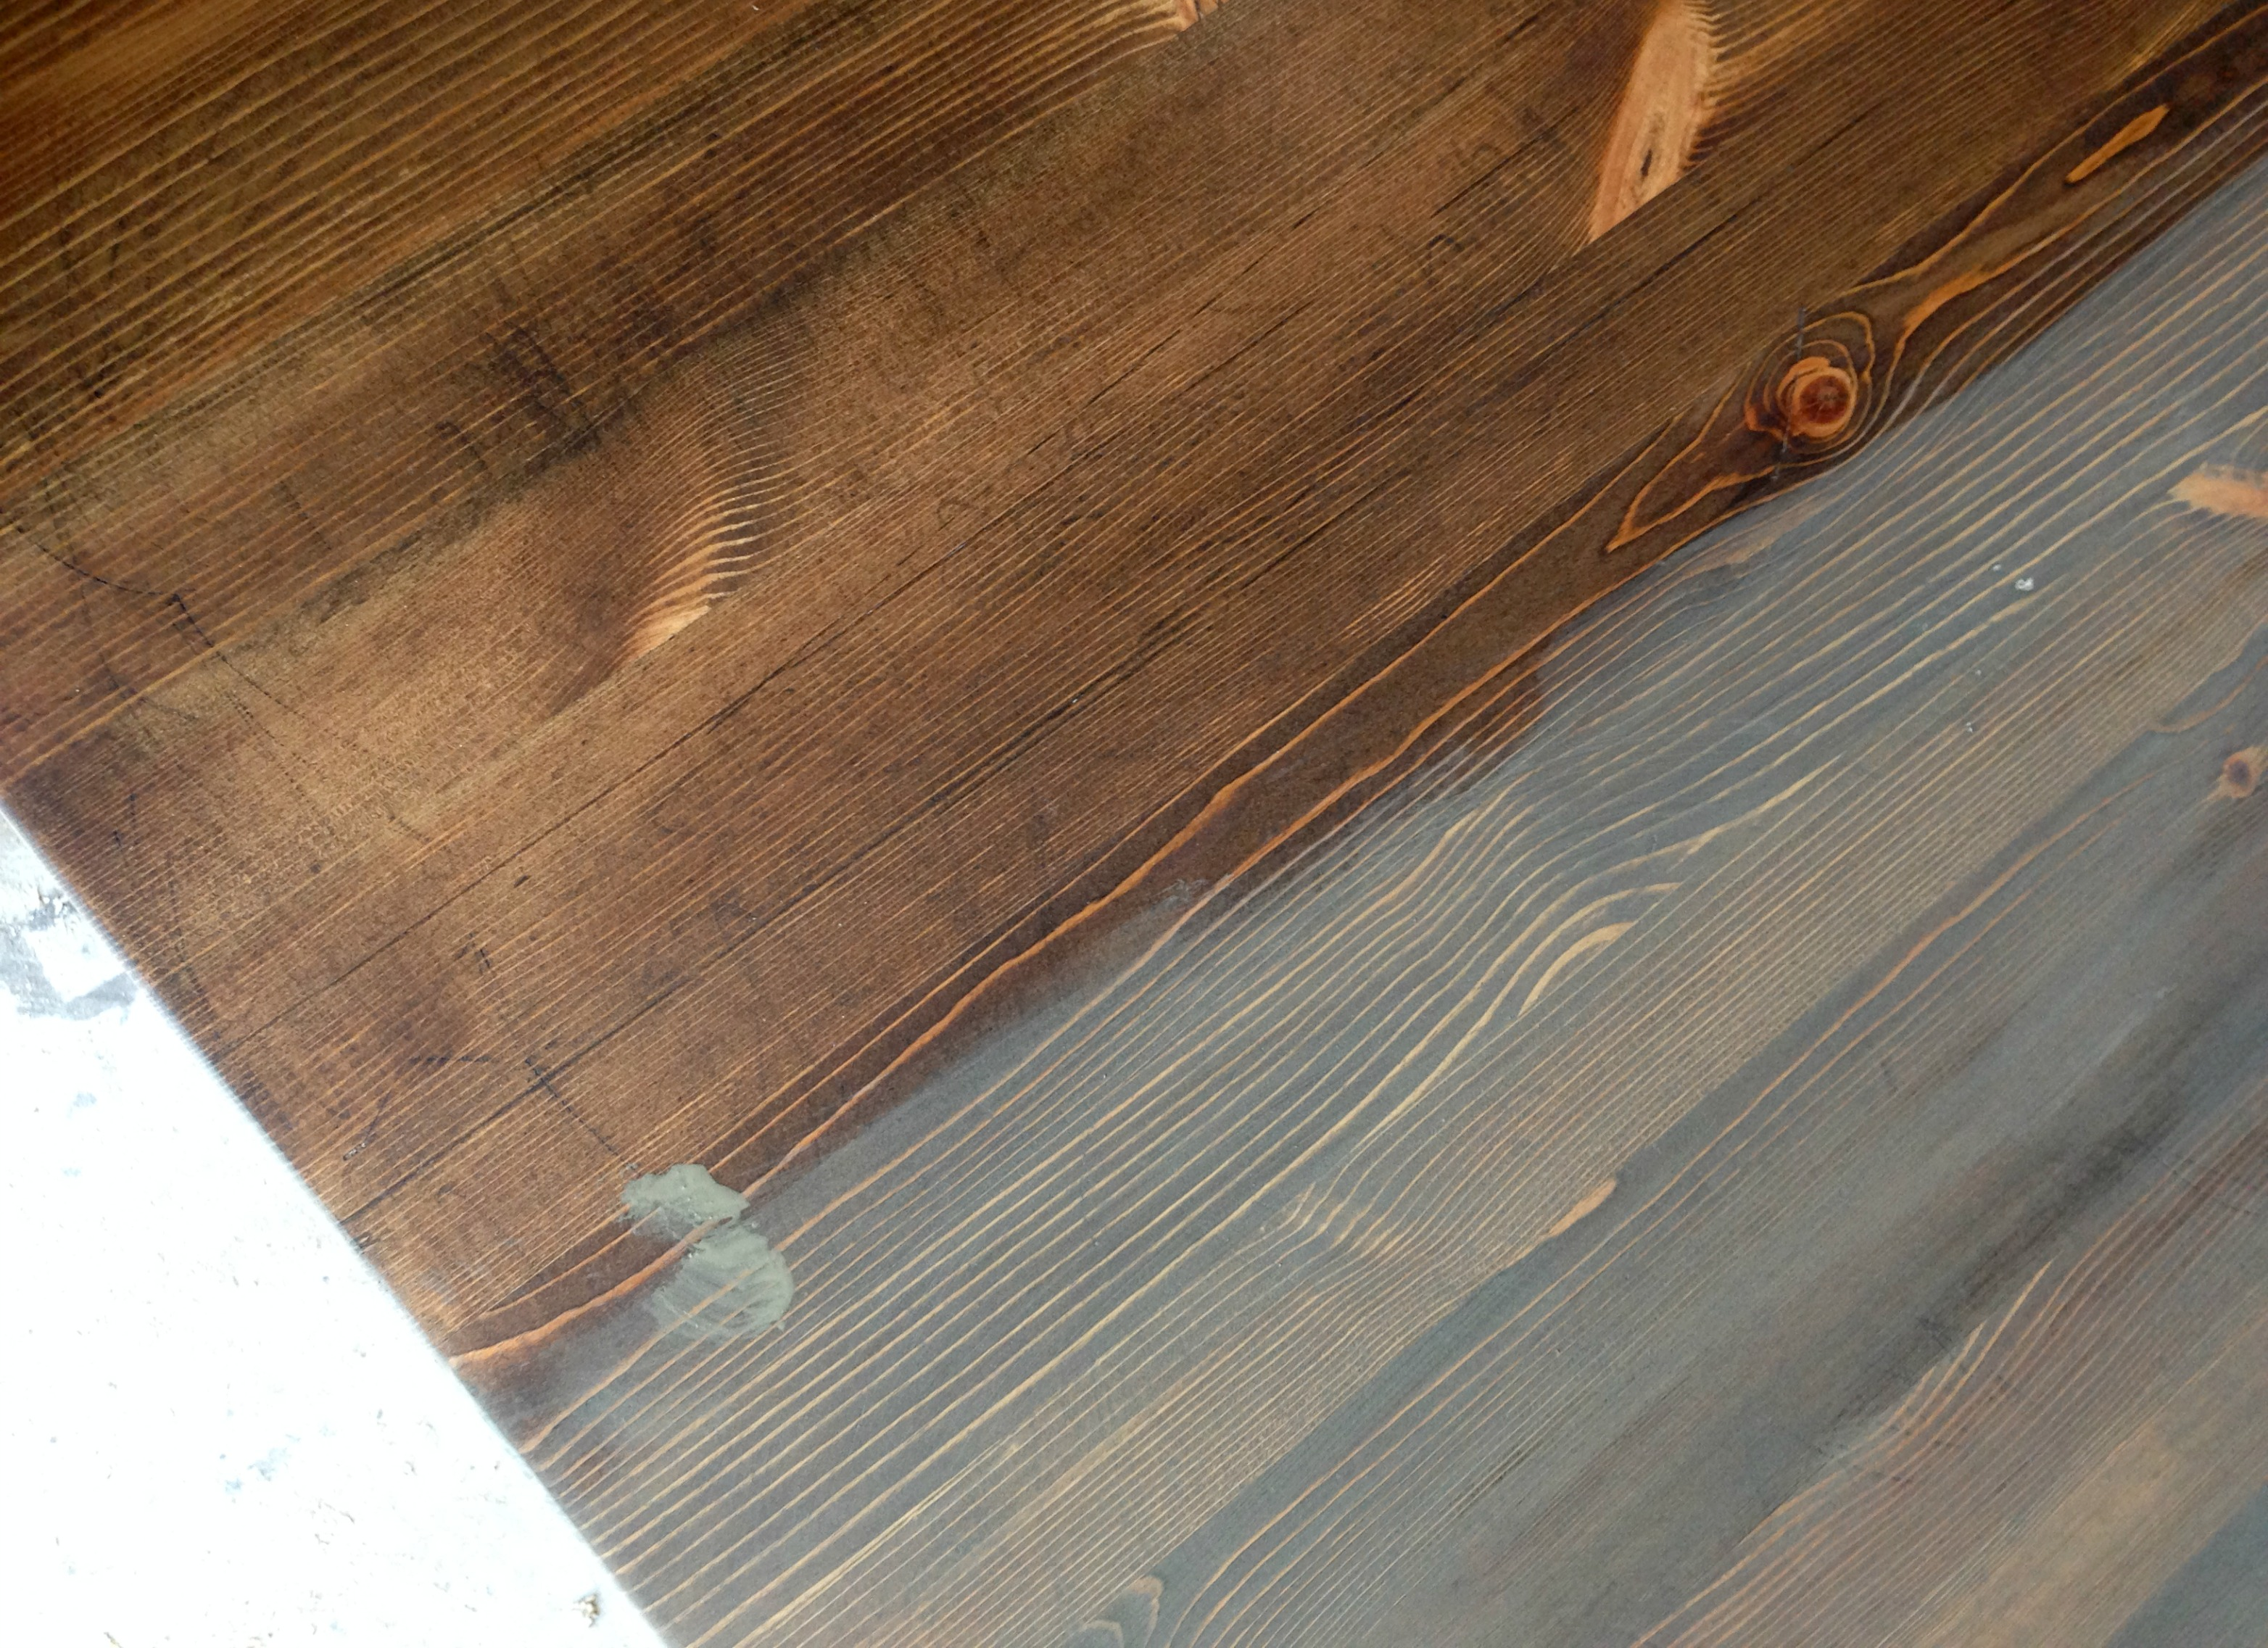 Turtles And Tails Smooth As Silk Refinished Table